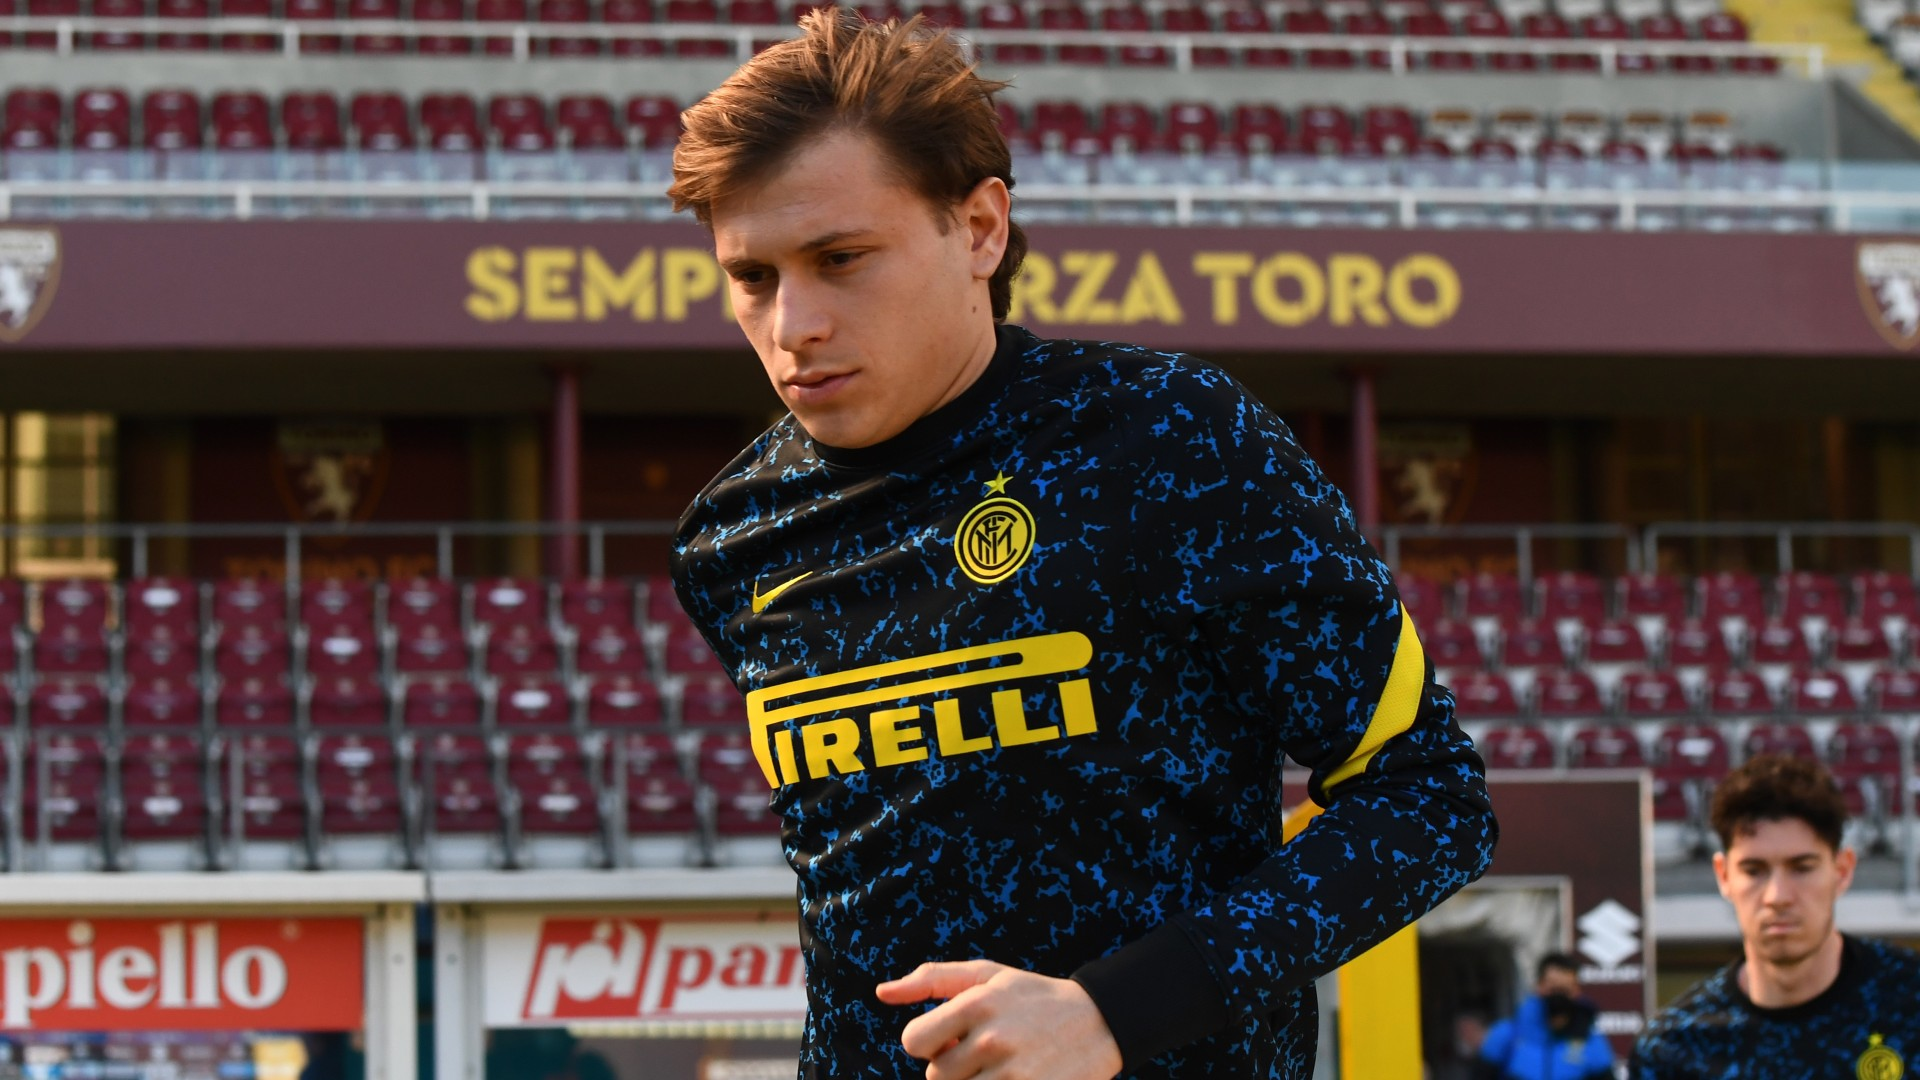 Inter's Barella inspired by Lakers superstar LeBron James